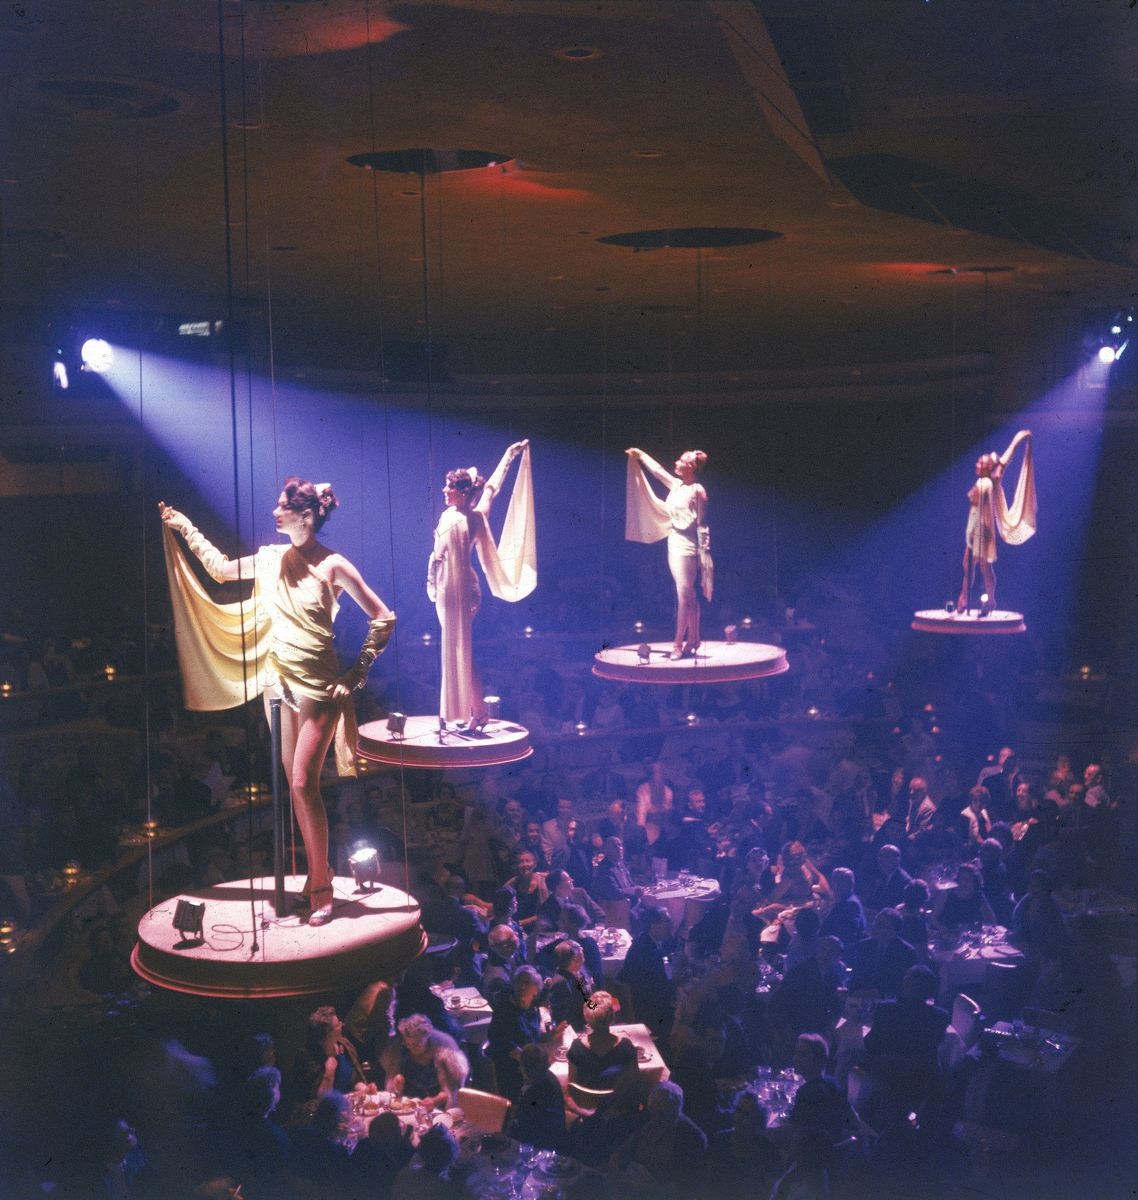 Slide 46 of 50: The Bluebell Girls pose on aerial platforms at the Stardust Hotel. This well-known group typically performed at the Lido Nightclub in Paris, France, but journeyed to Las Vegas in 1958.